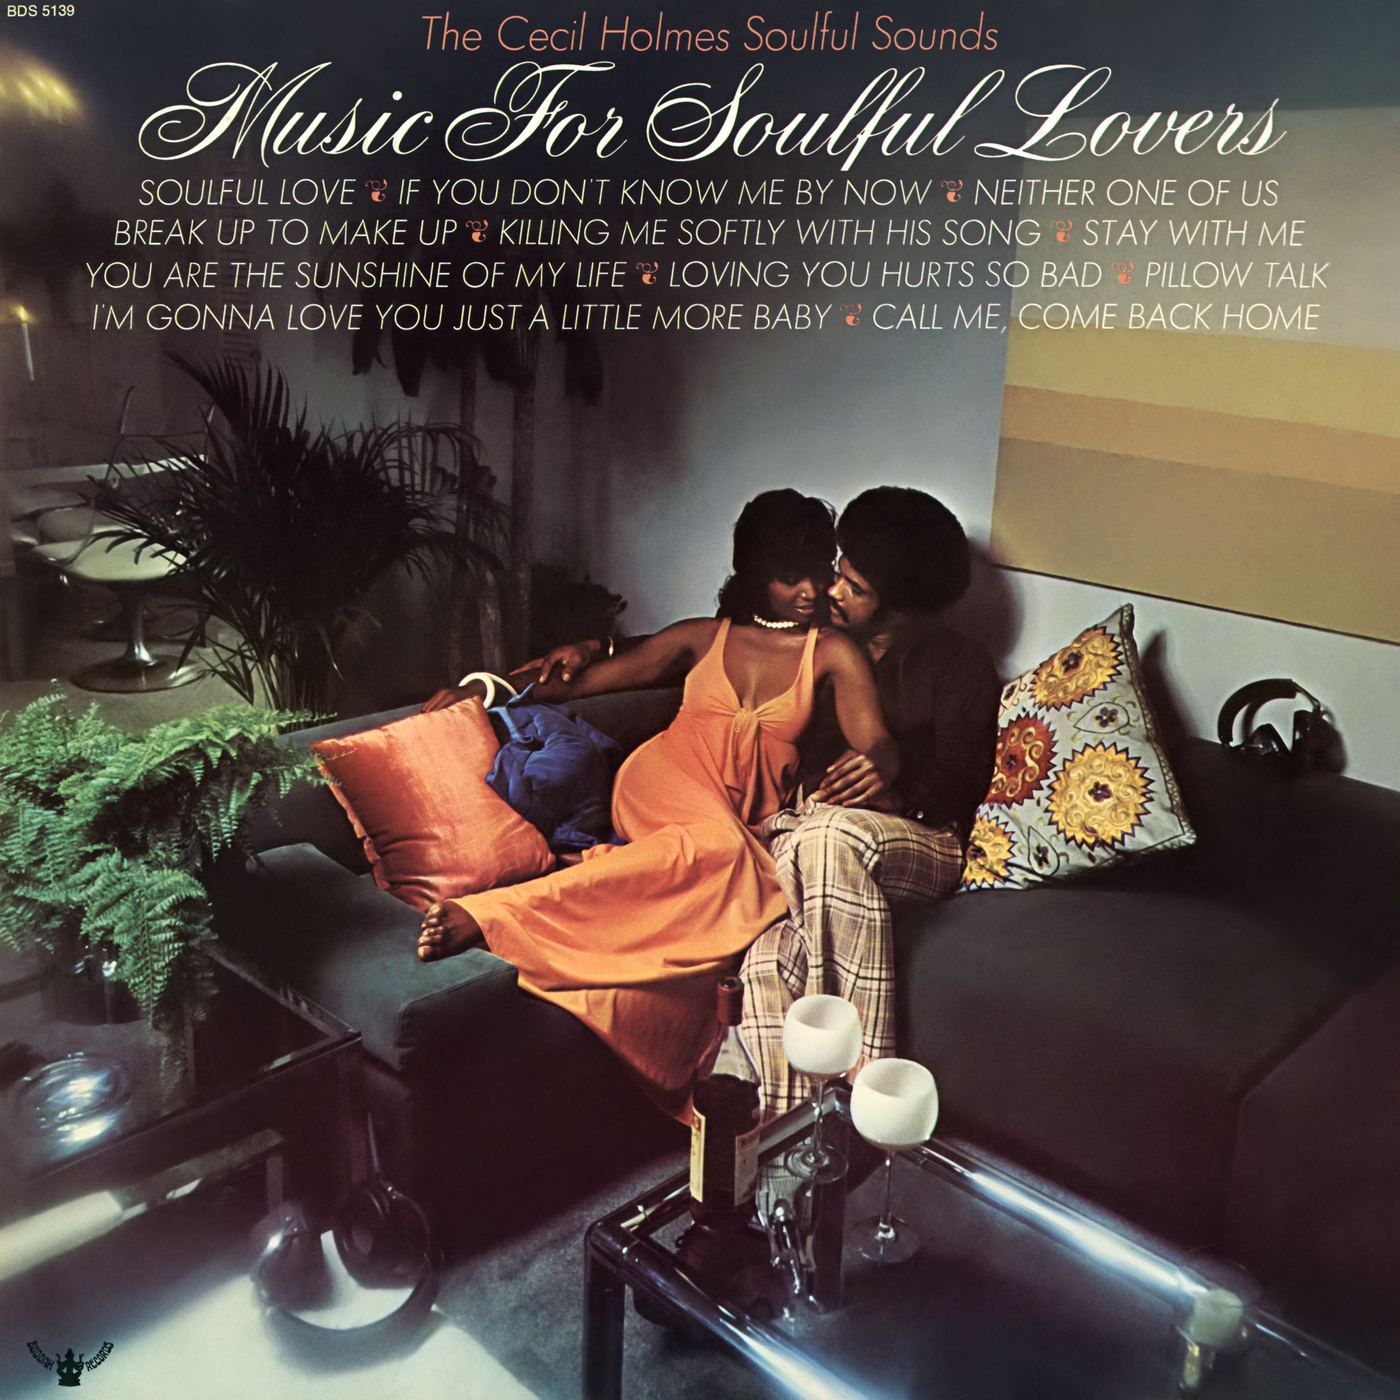 Music for Soulful Lovers - The Cecil Holmes Soulful Sounds